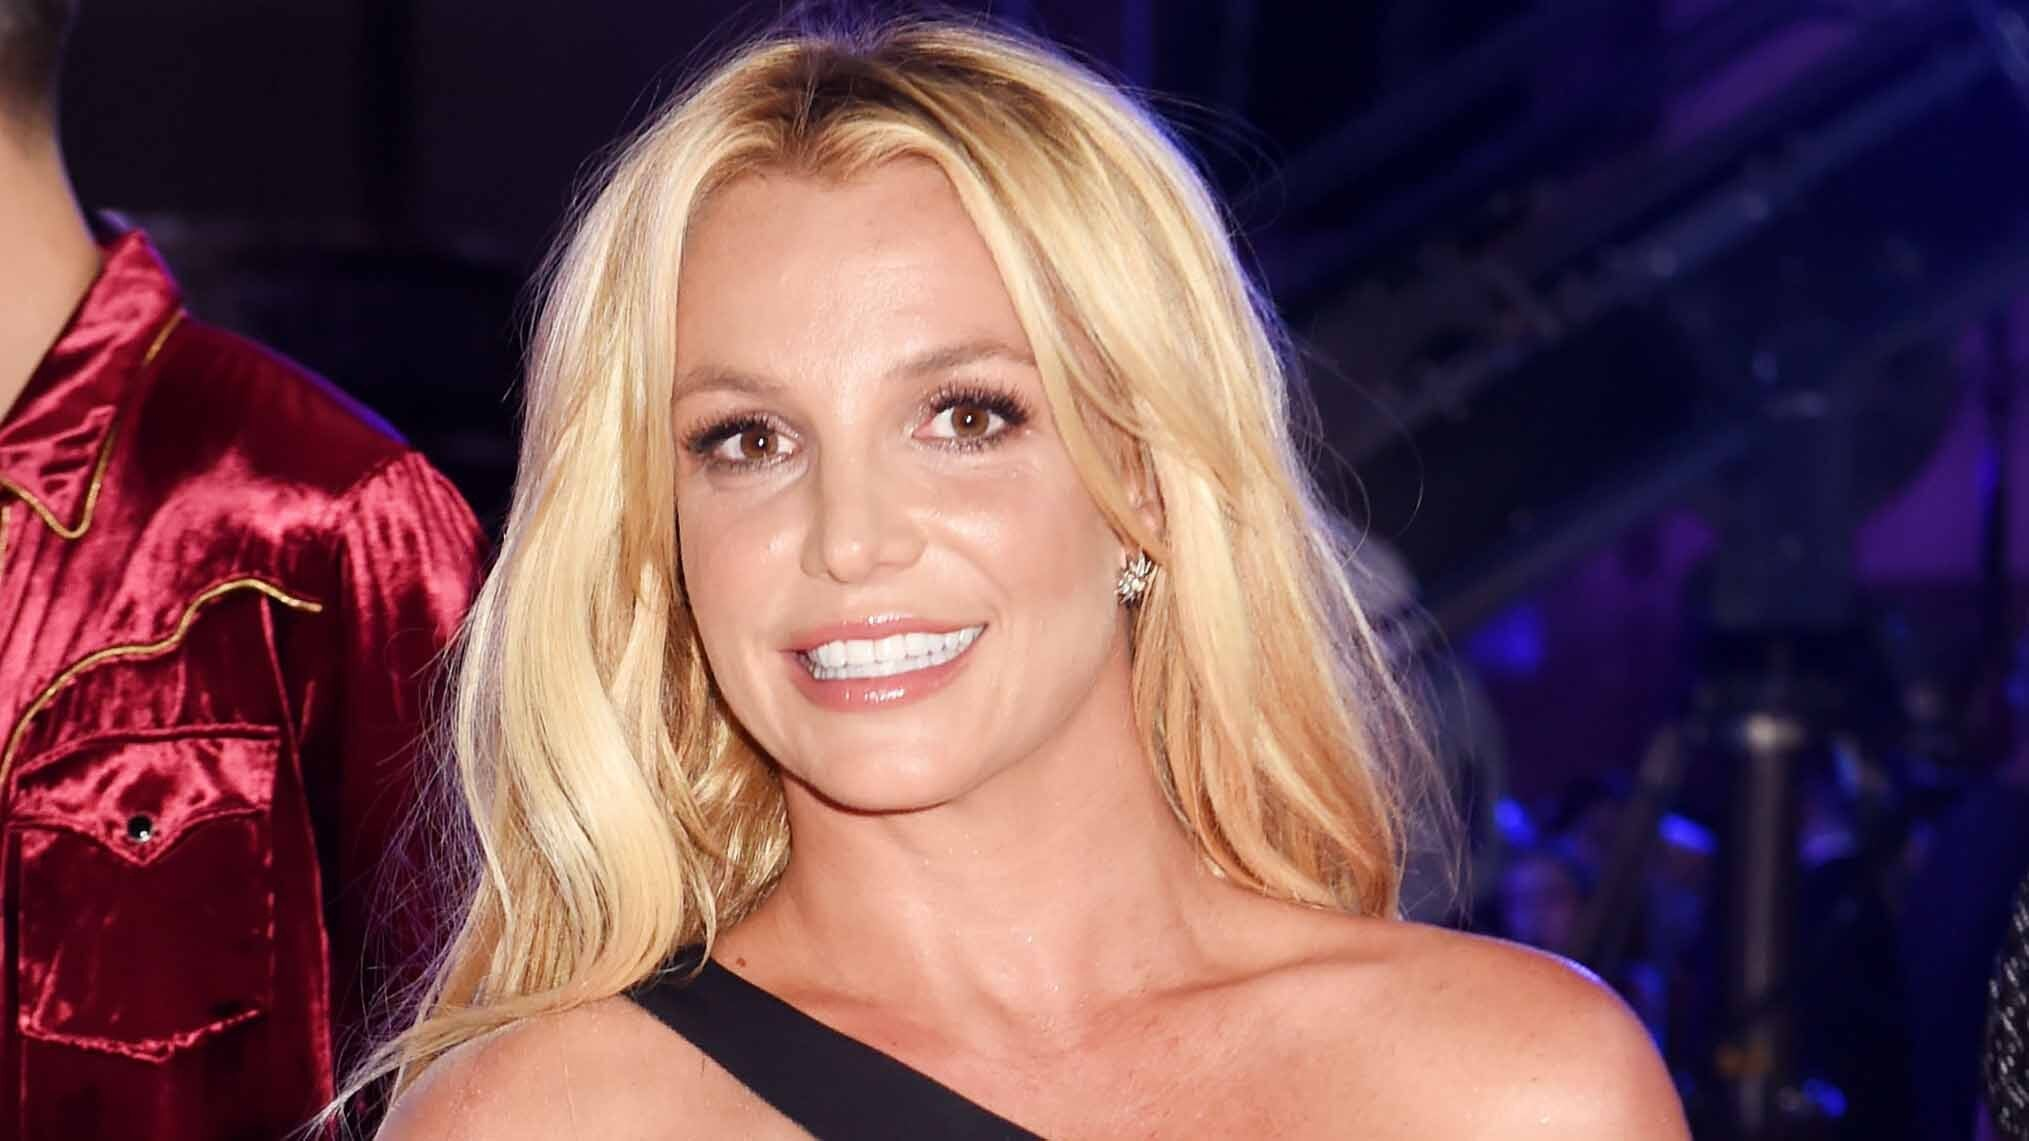 Where to Watch Britney Spears' Documentary